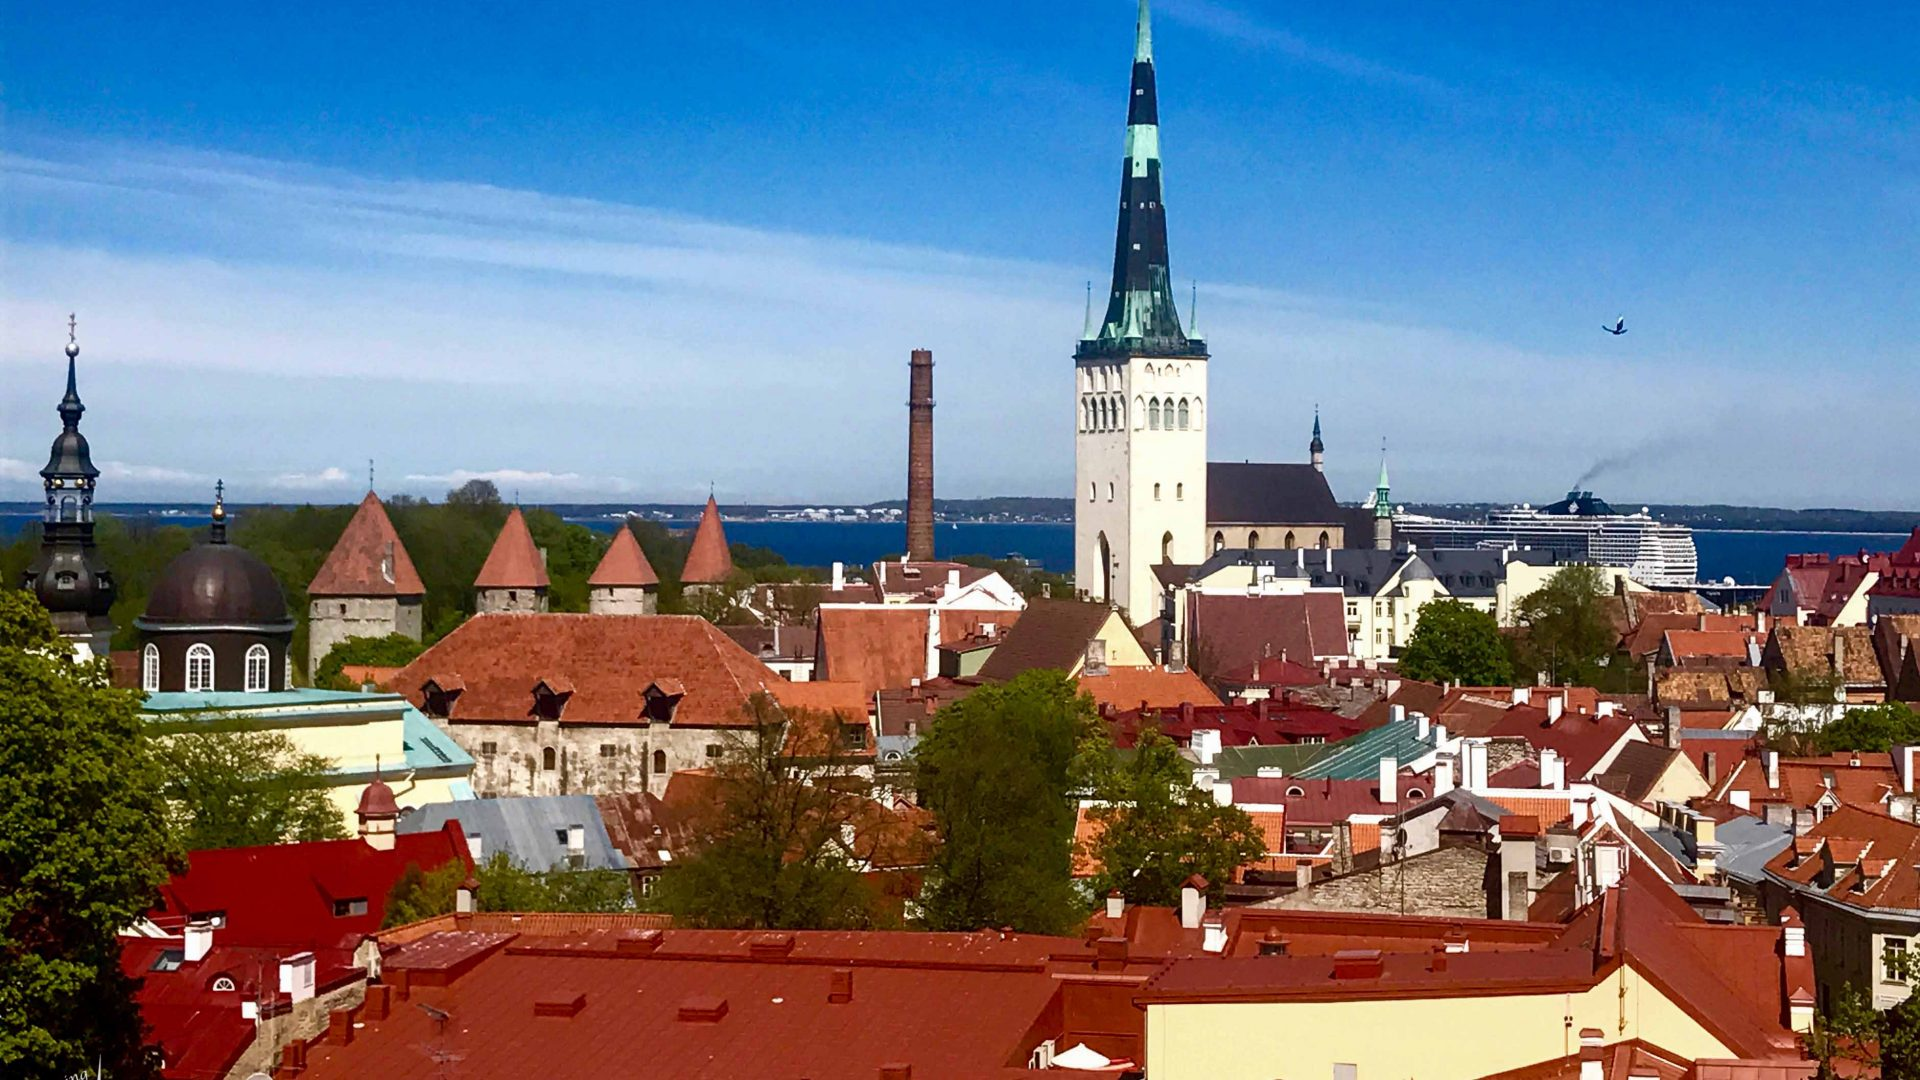 TOP 18 things to do in Tallinn - Estonia